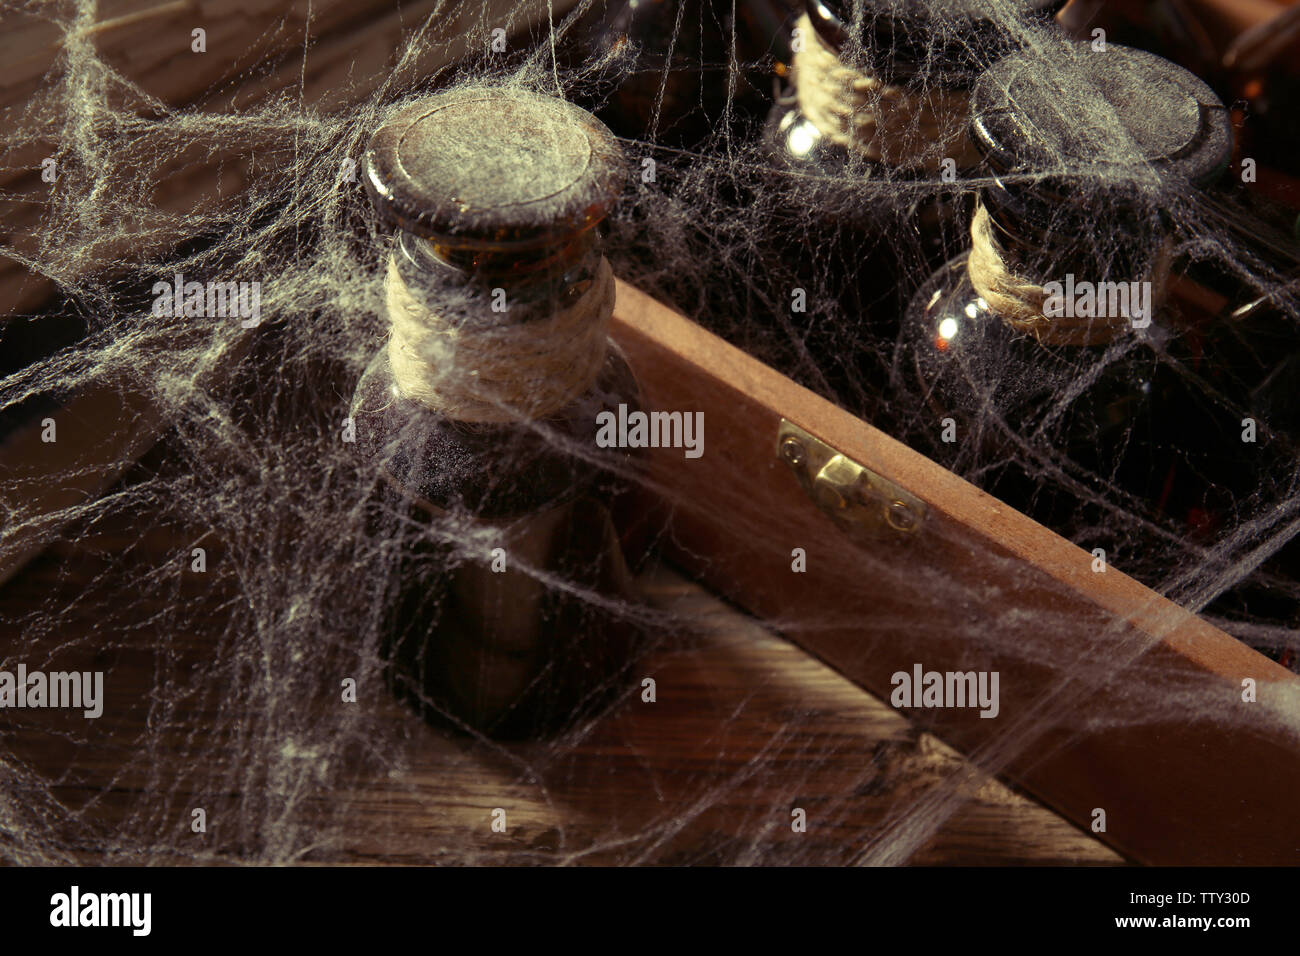 Vintage glass bottle with spiderweb, closeup - Stock Image